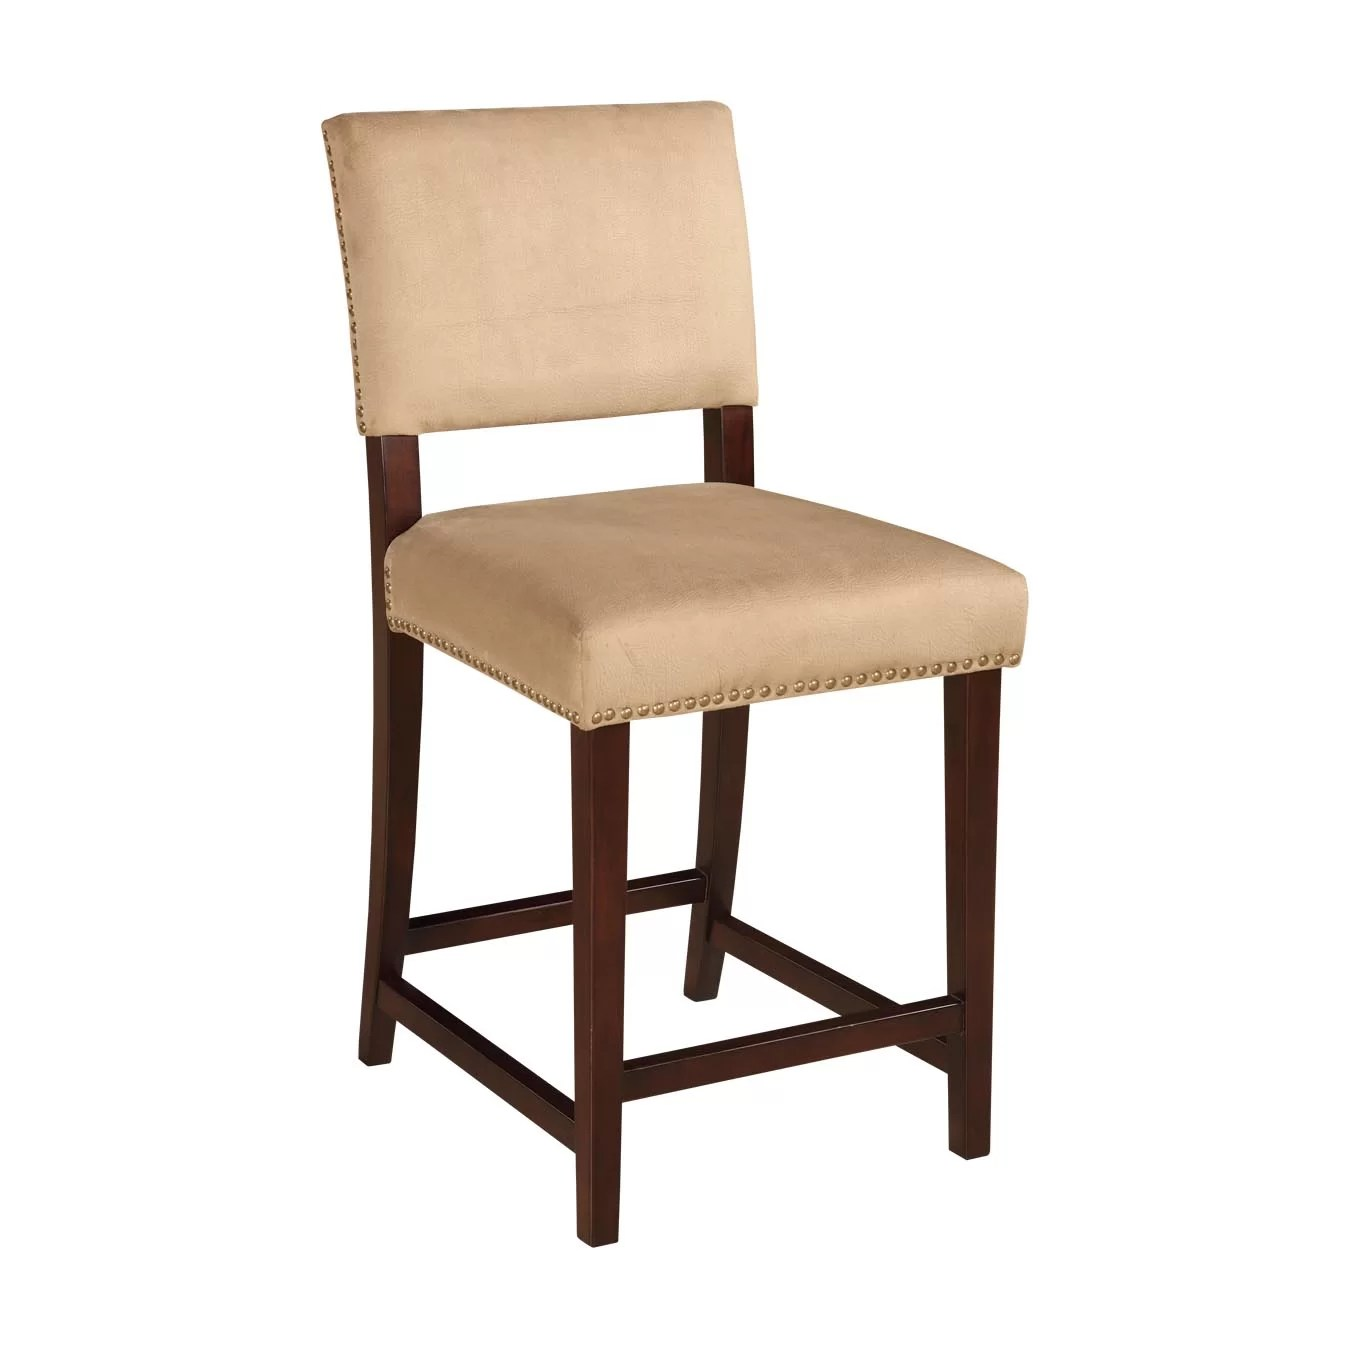 "Linon Corey 30"" Bar Stool & Reviews"